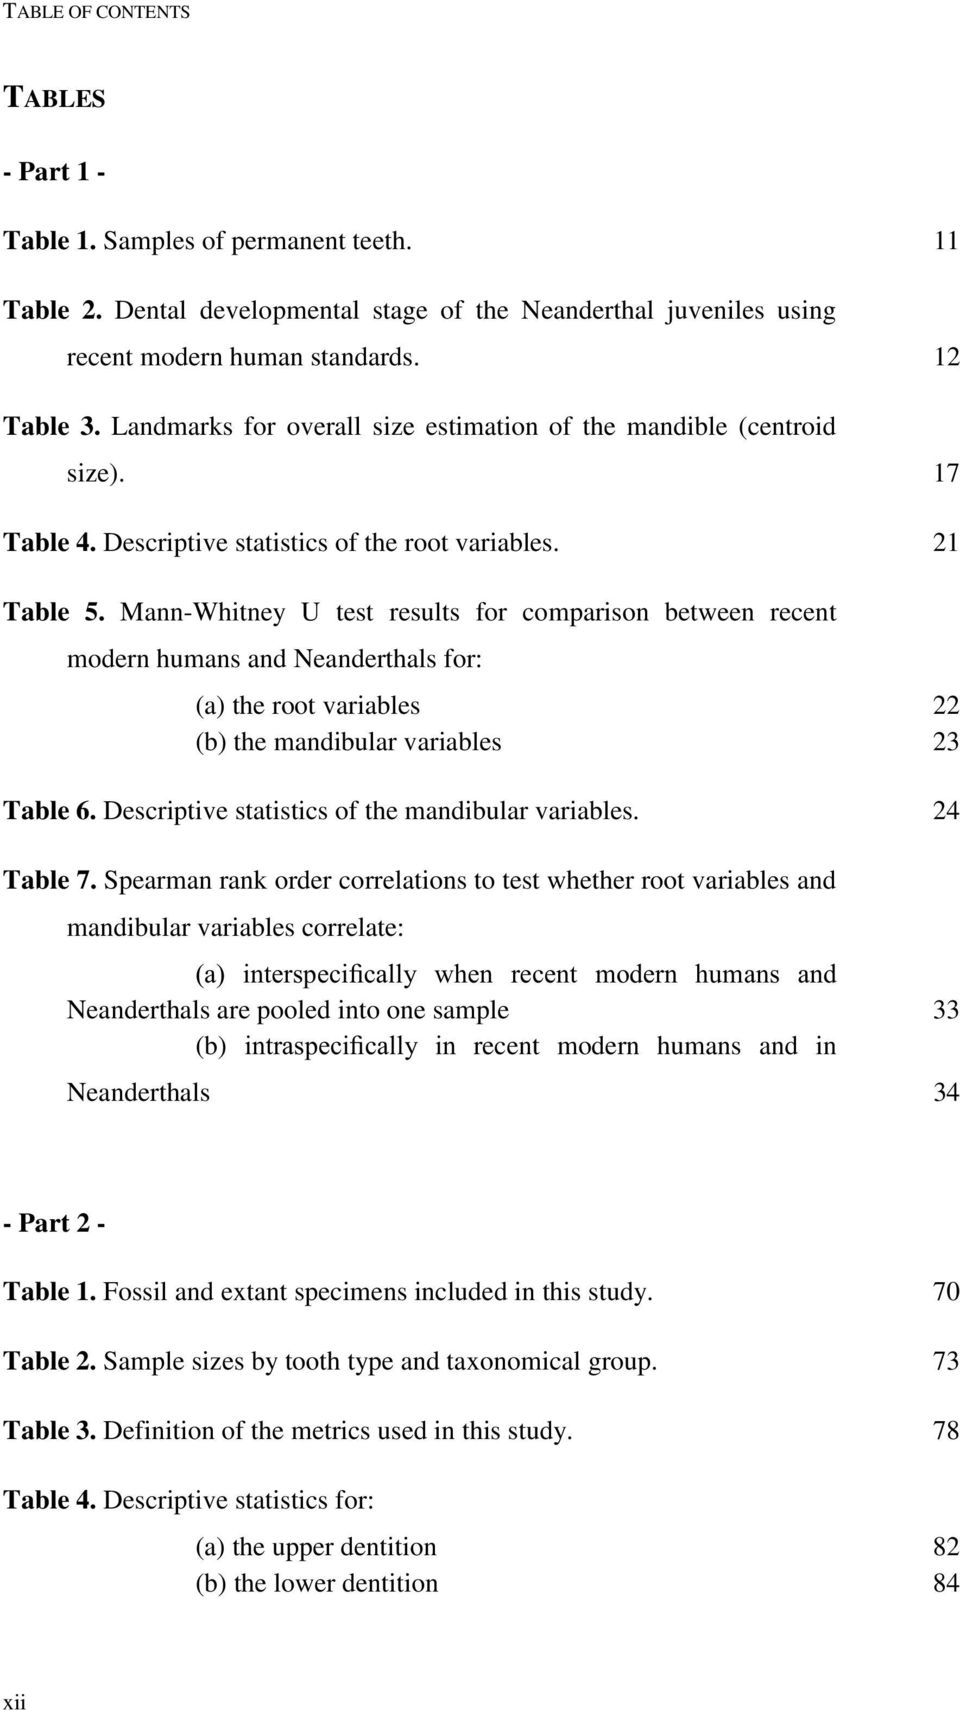 Mann-Whitney U test results for comparison between recent modern humans and Neanderthals for: (a) the root variables 22 (b) the mandibular variables 23 Table 6.